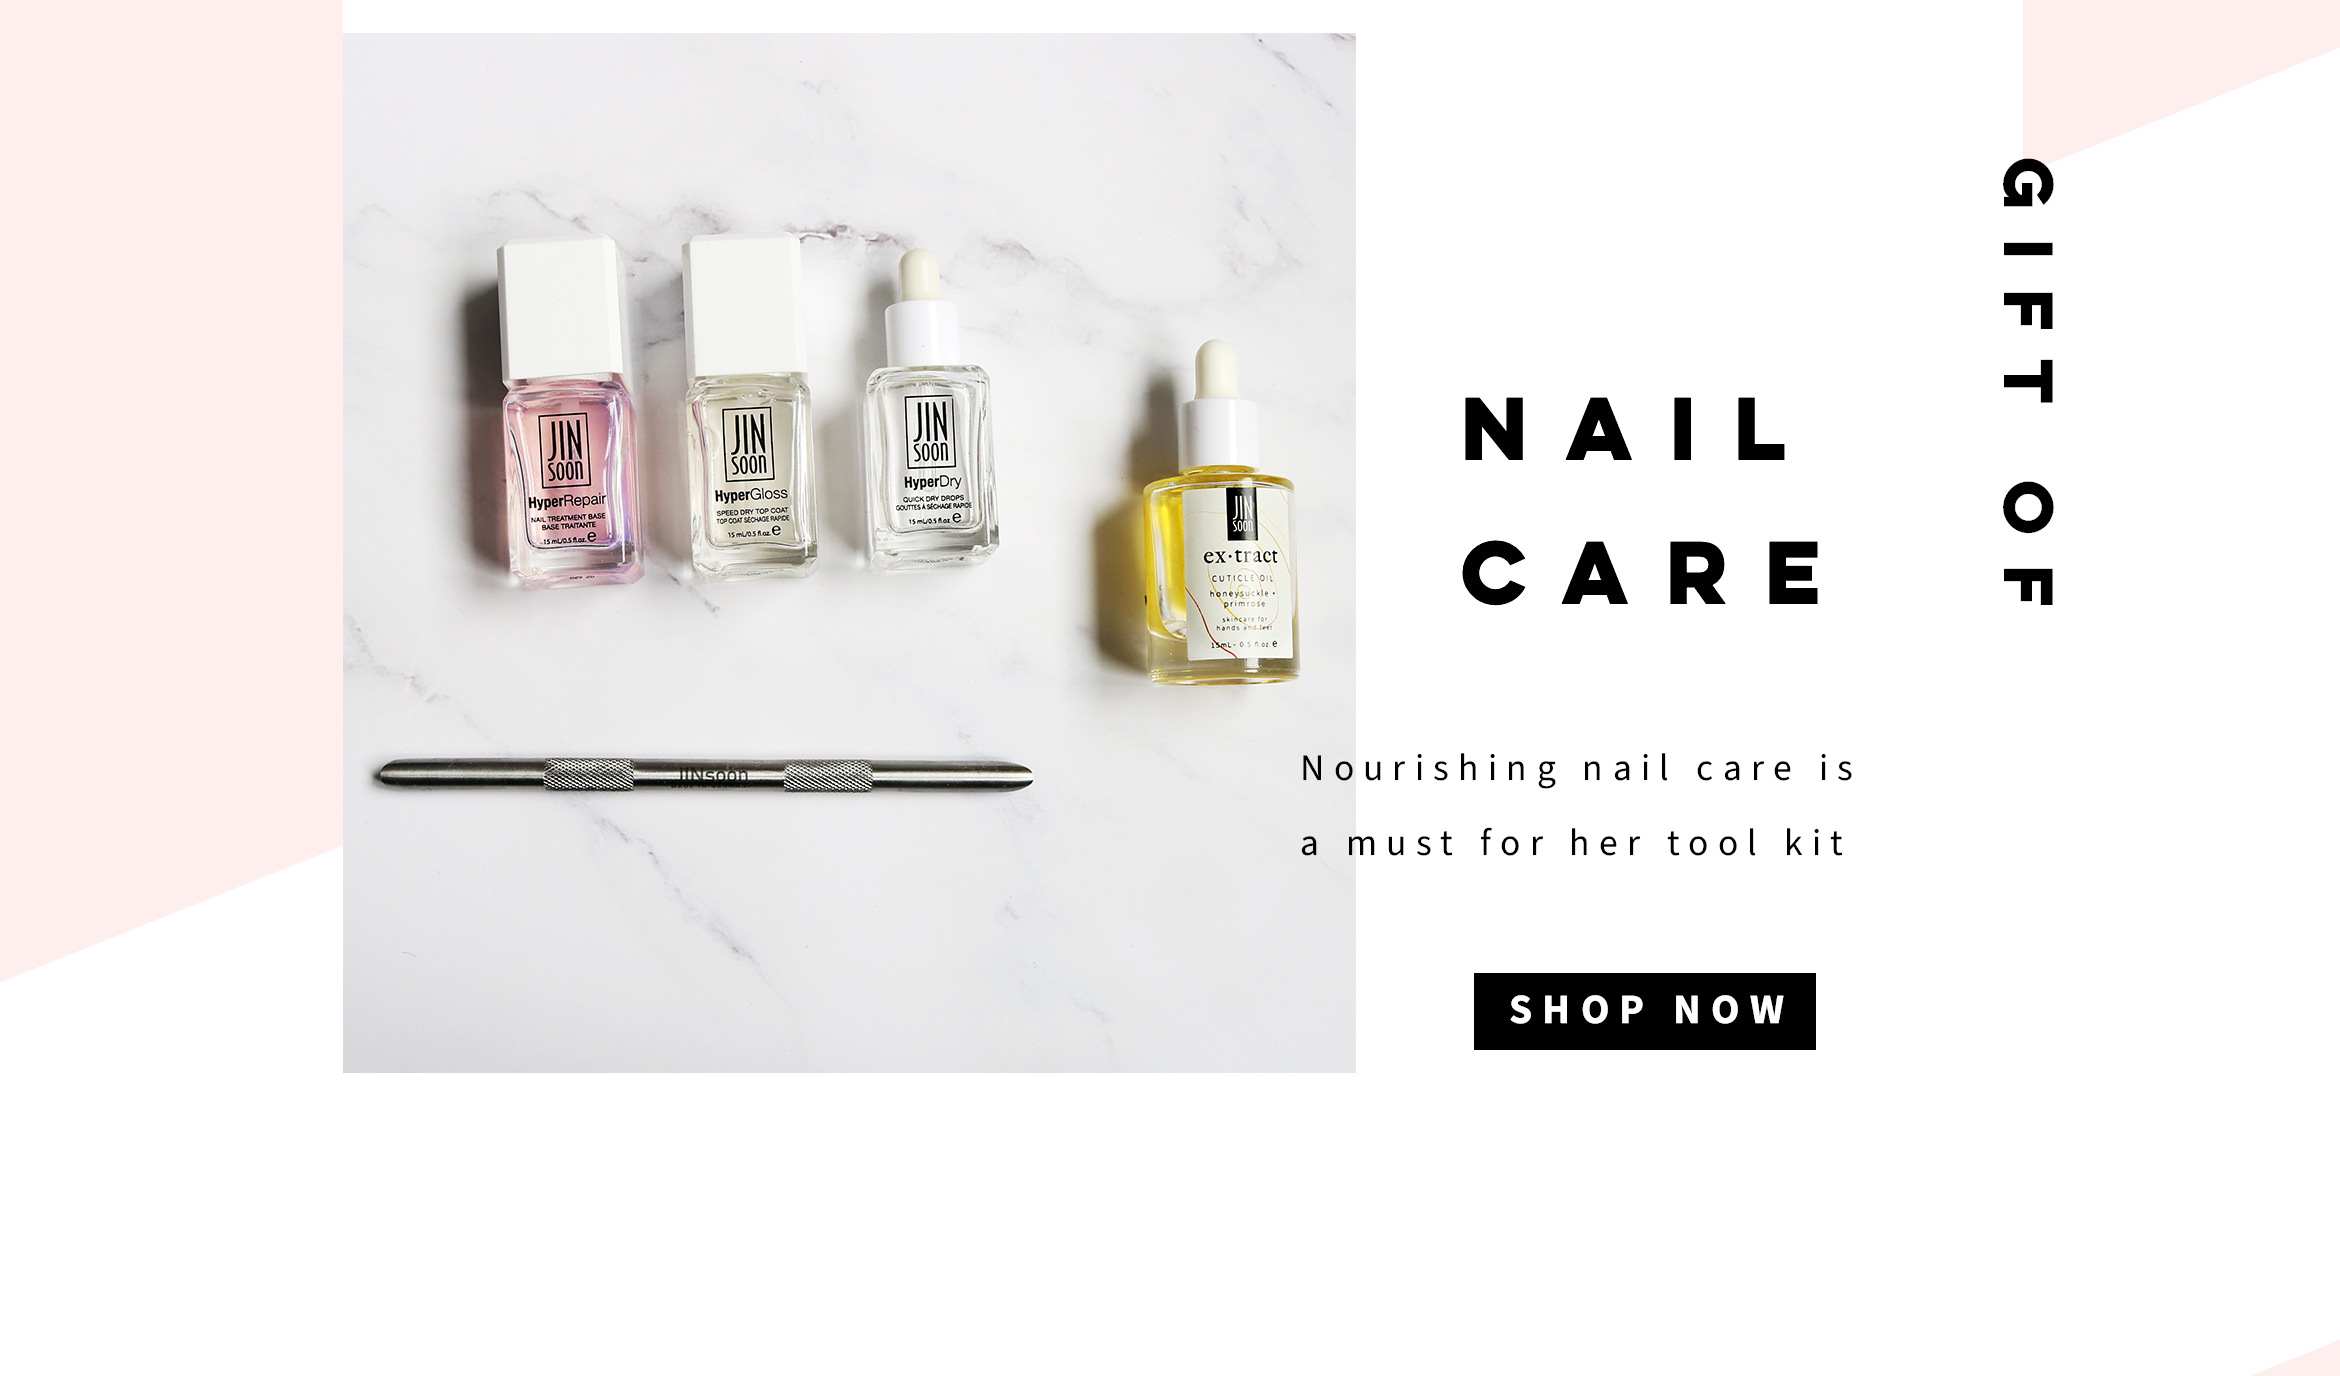 Nail Care with HyperCare series and Cuticle Pusher and oil